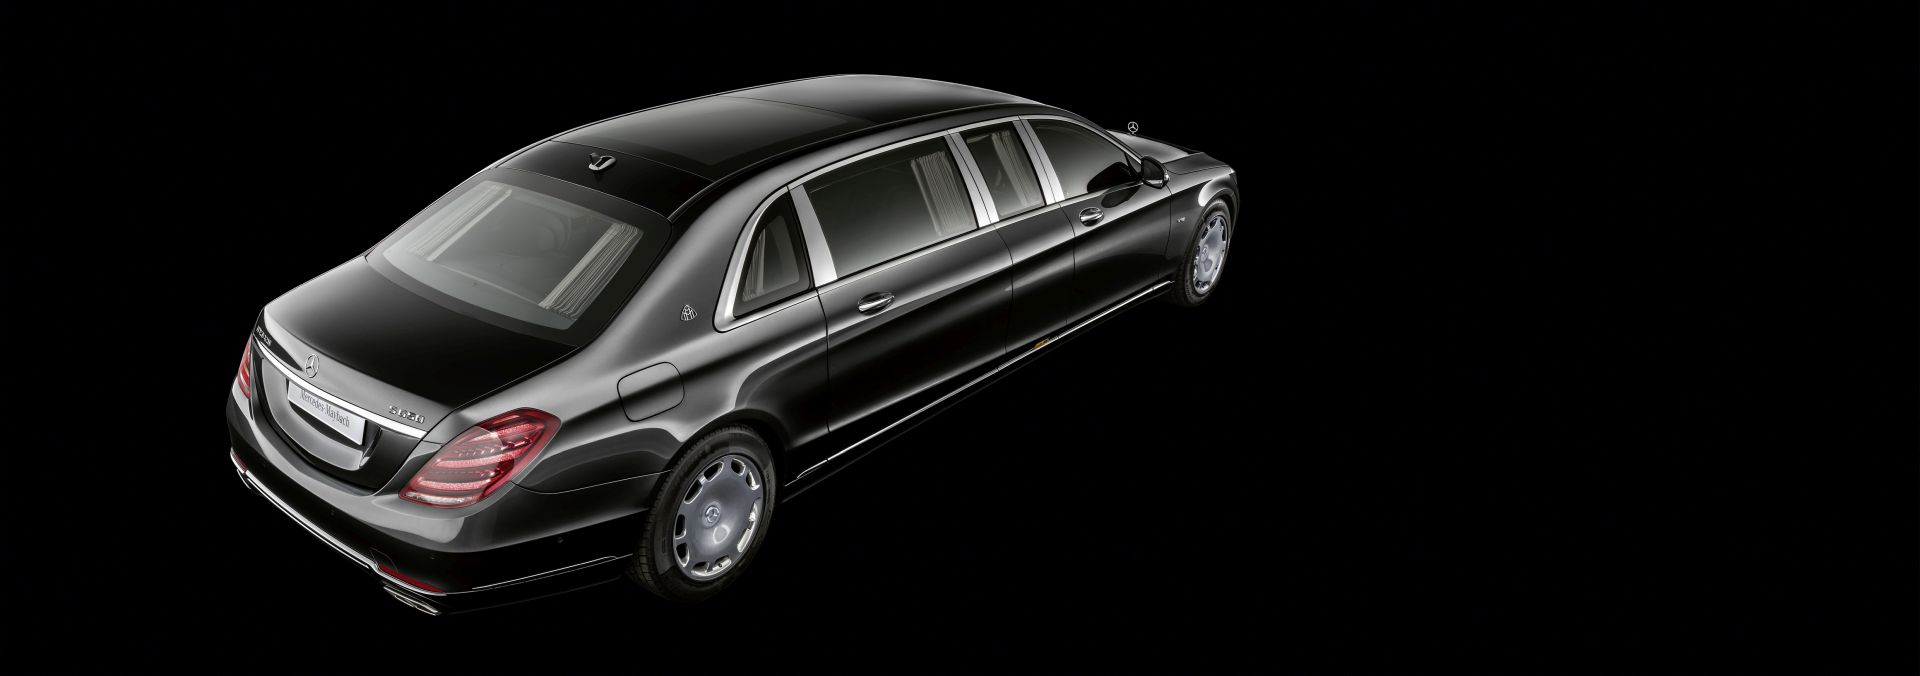 Mercedes benz s650 pullman maybach specs 2018 for Mercedes benz s650